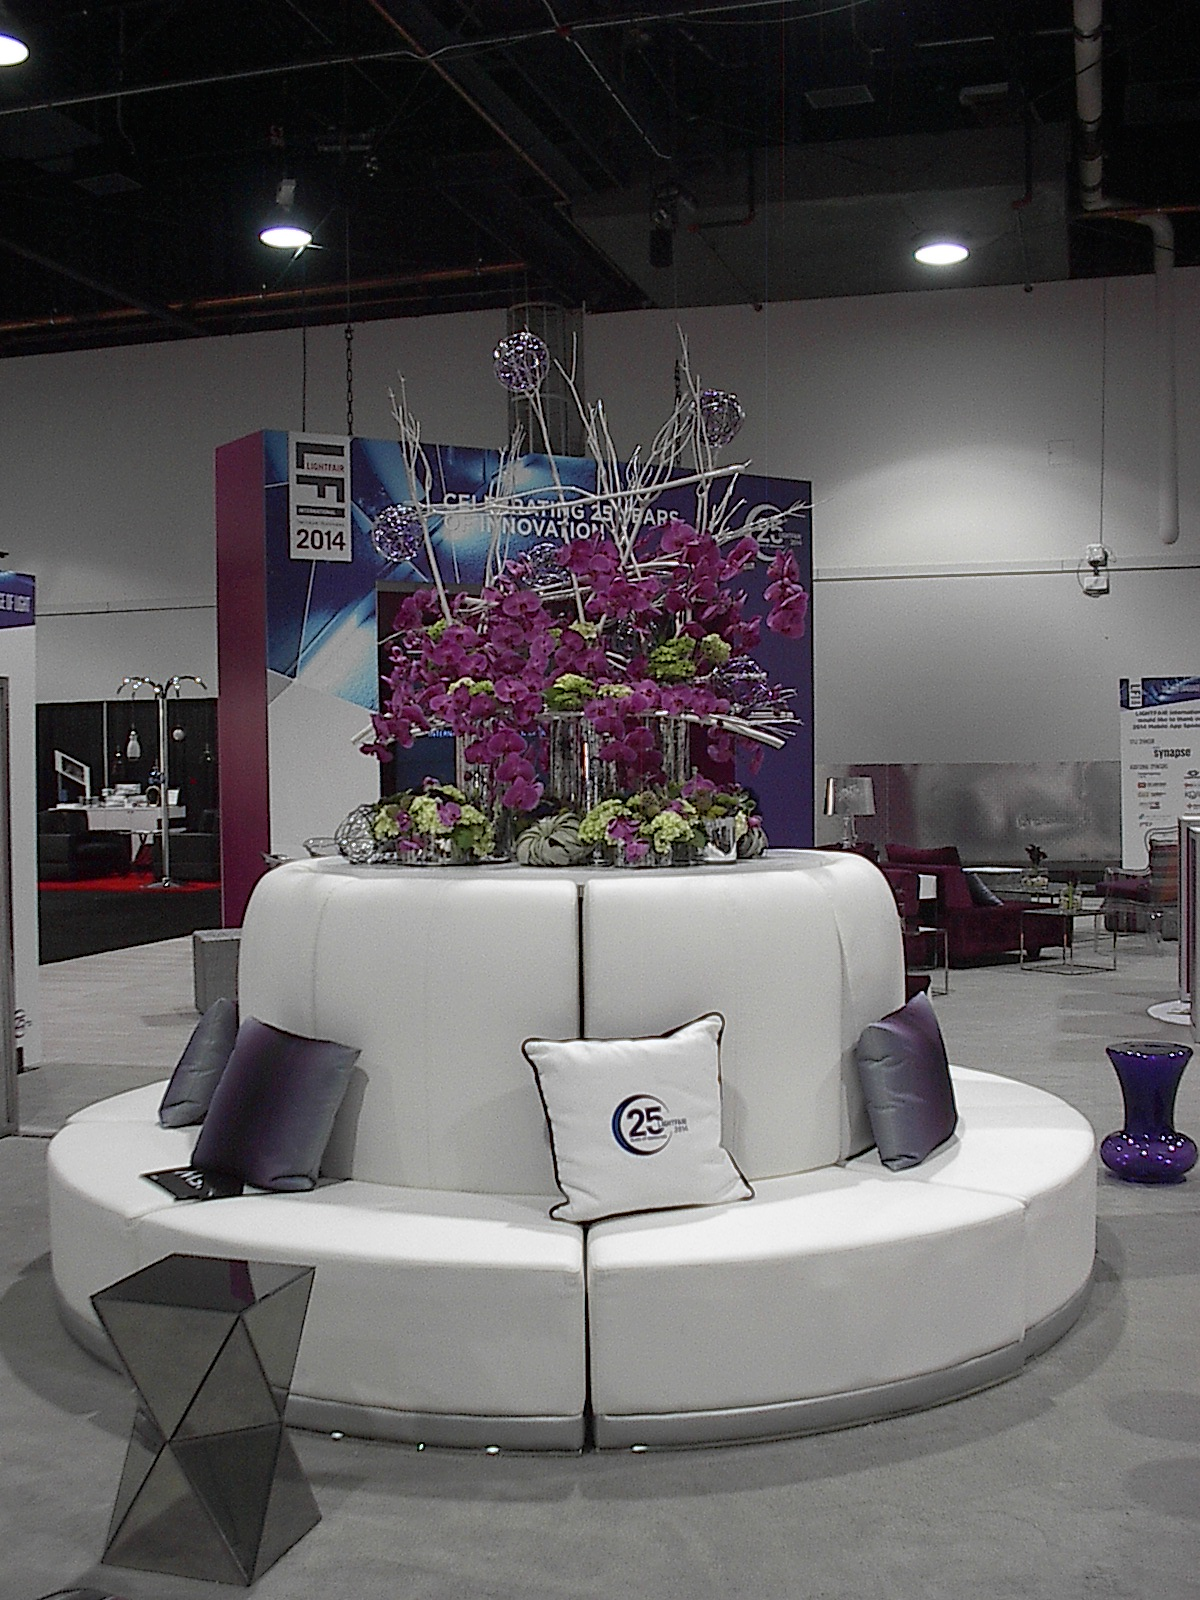 No job is too big, our custom flowers at the Las Vegas Convention Center, approved show florists.